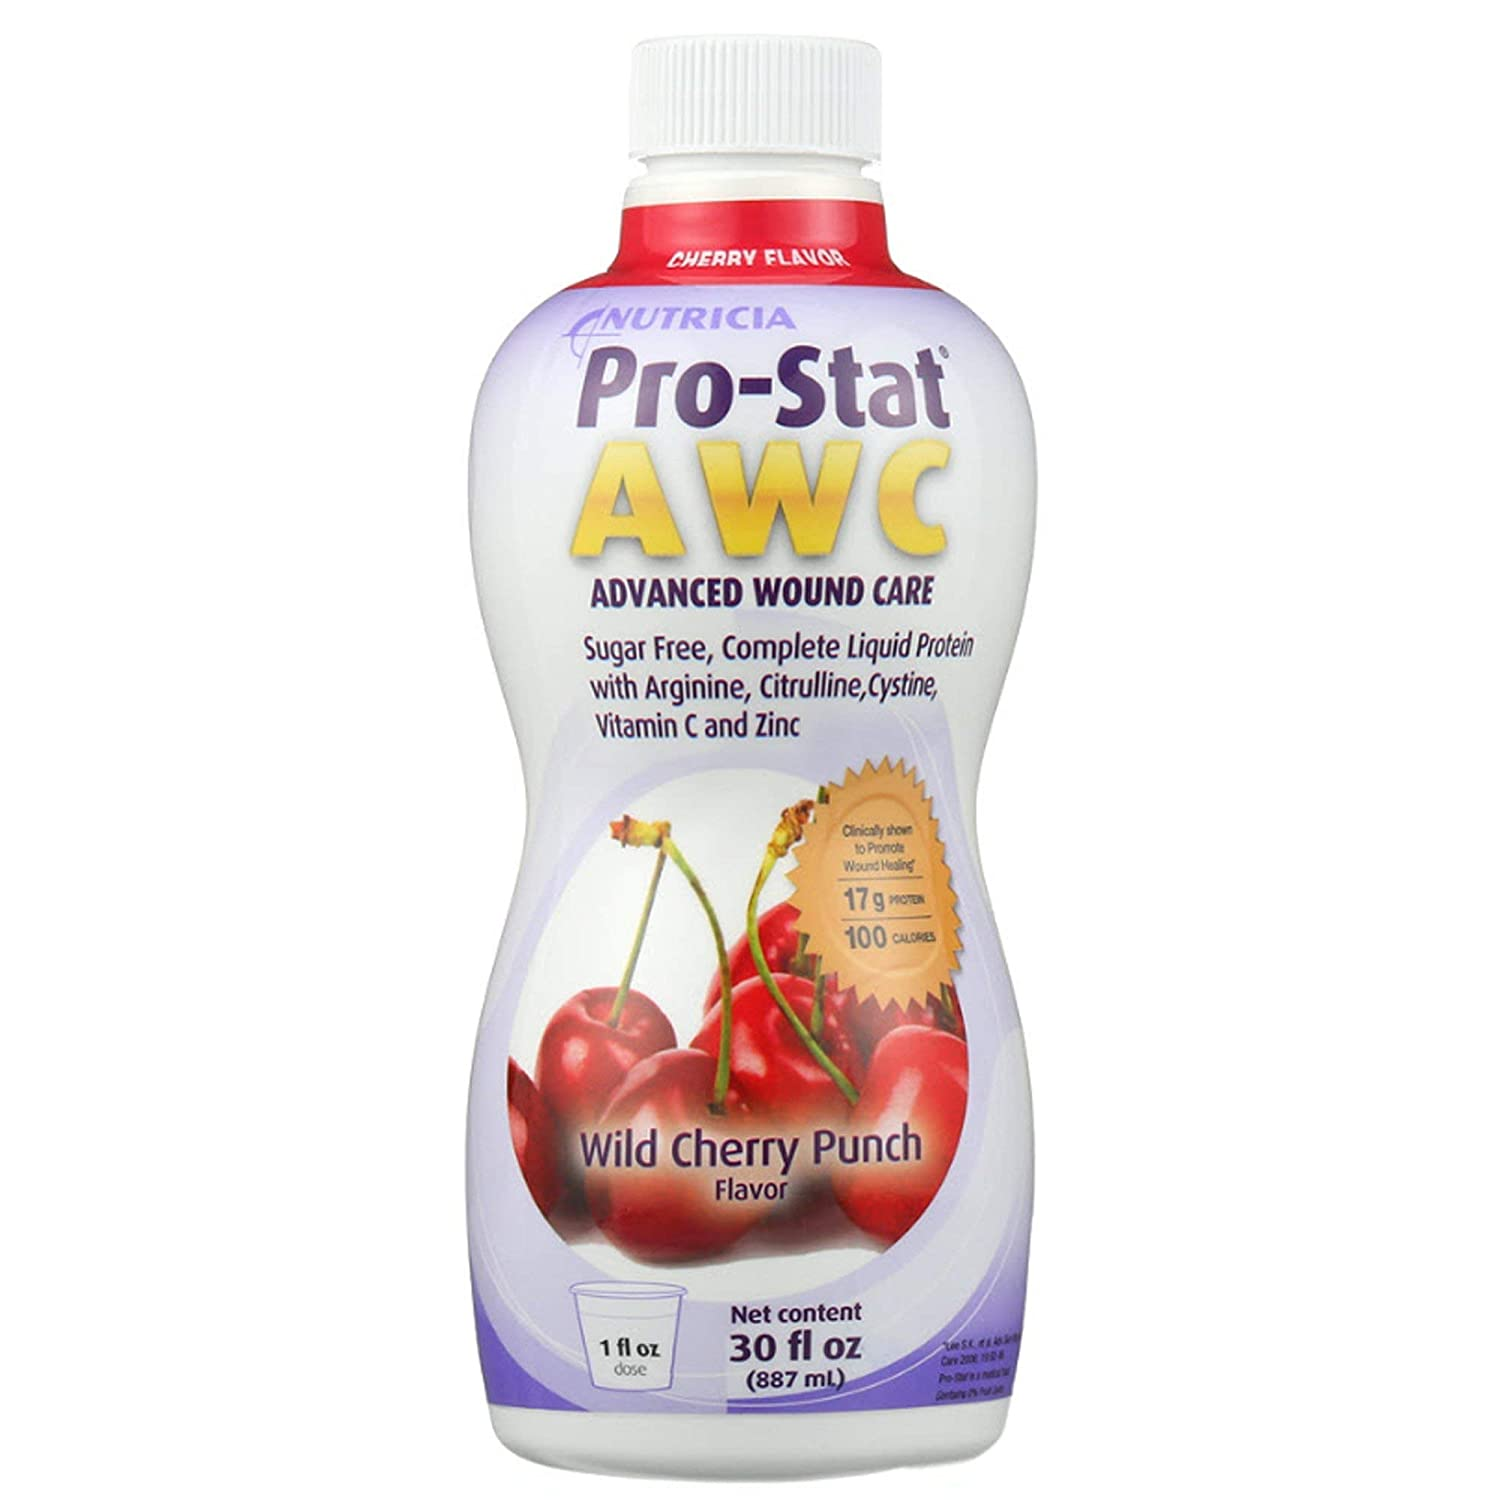 Pro-Stat Sugar Free Large-scale sale AWC Protein Supplement Cherry Surprise price Fla Wild Punch